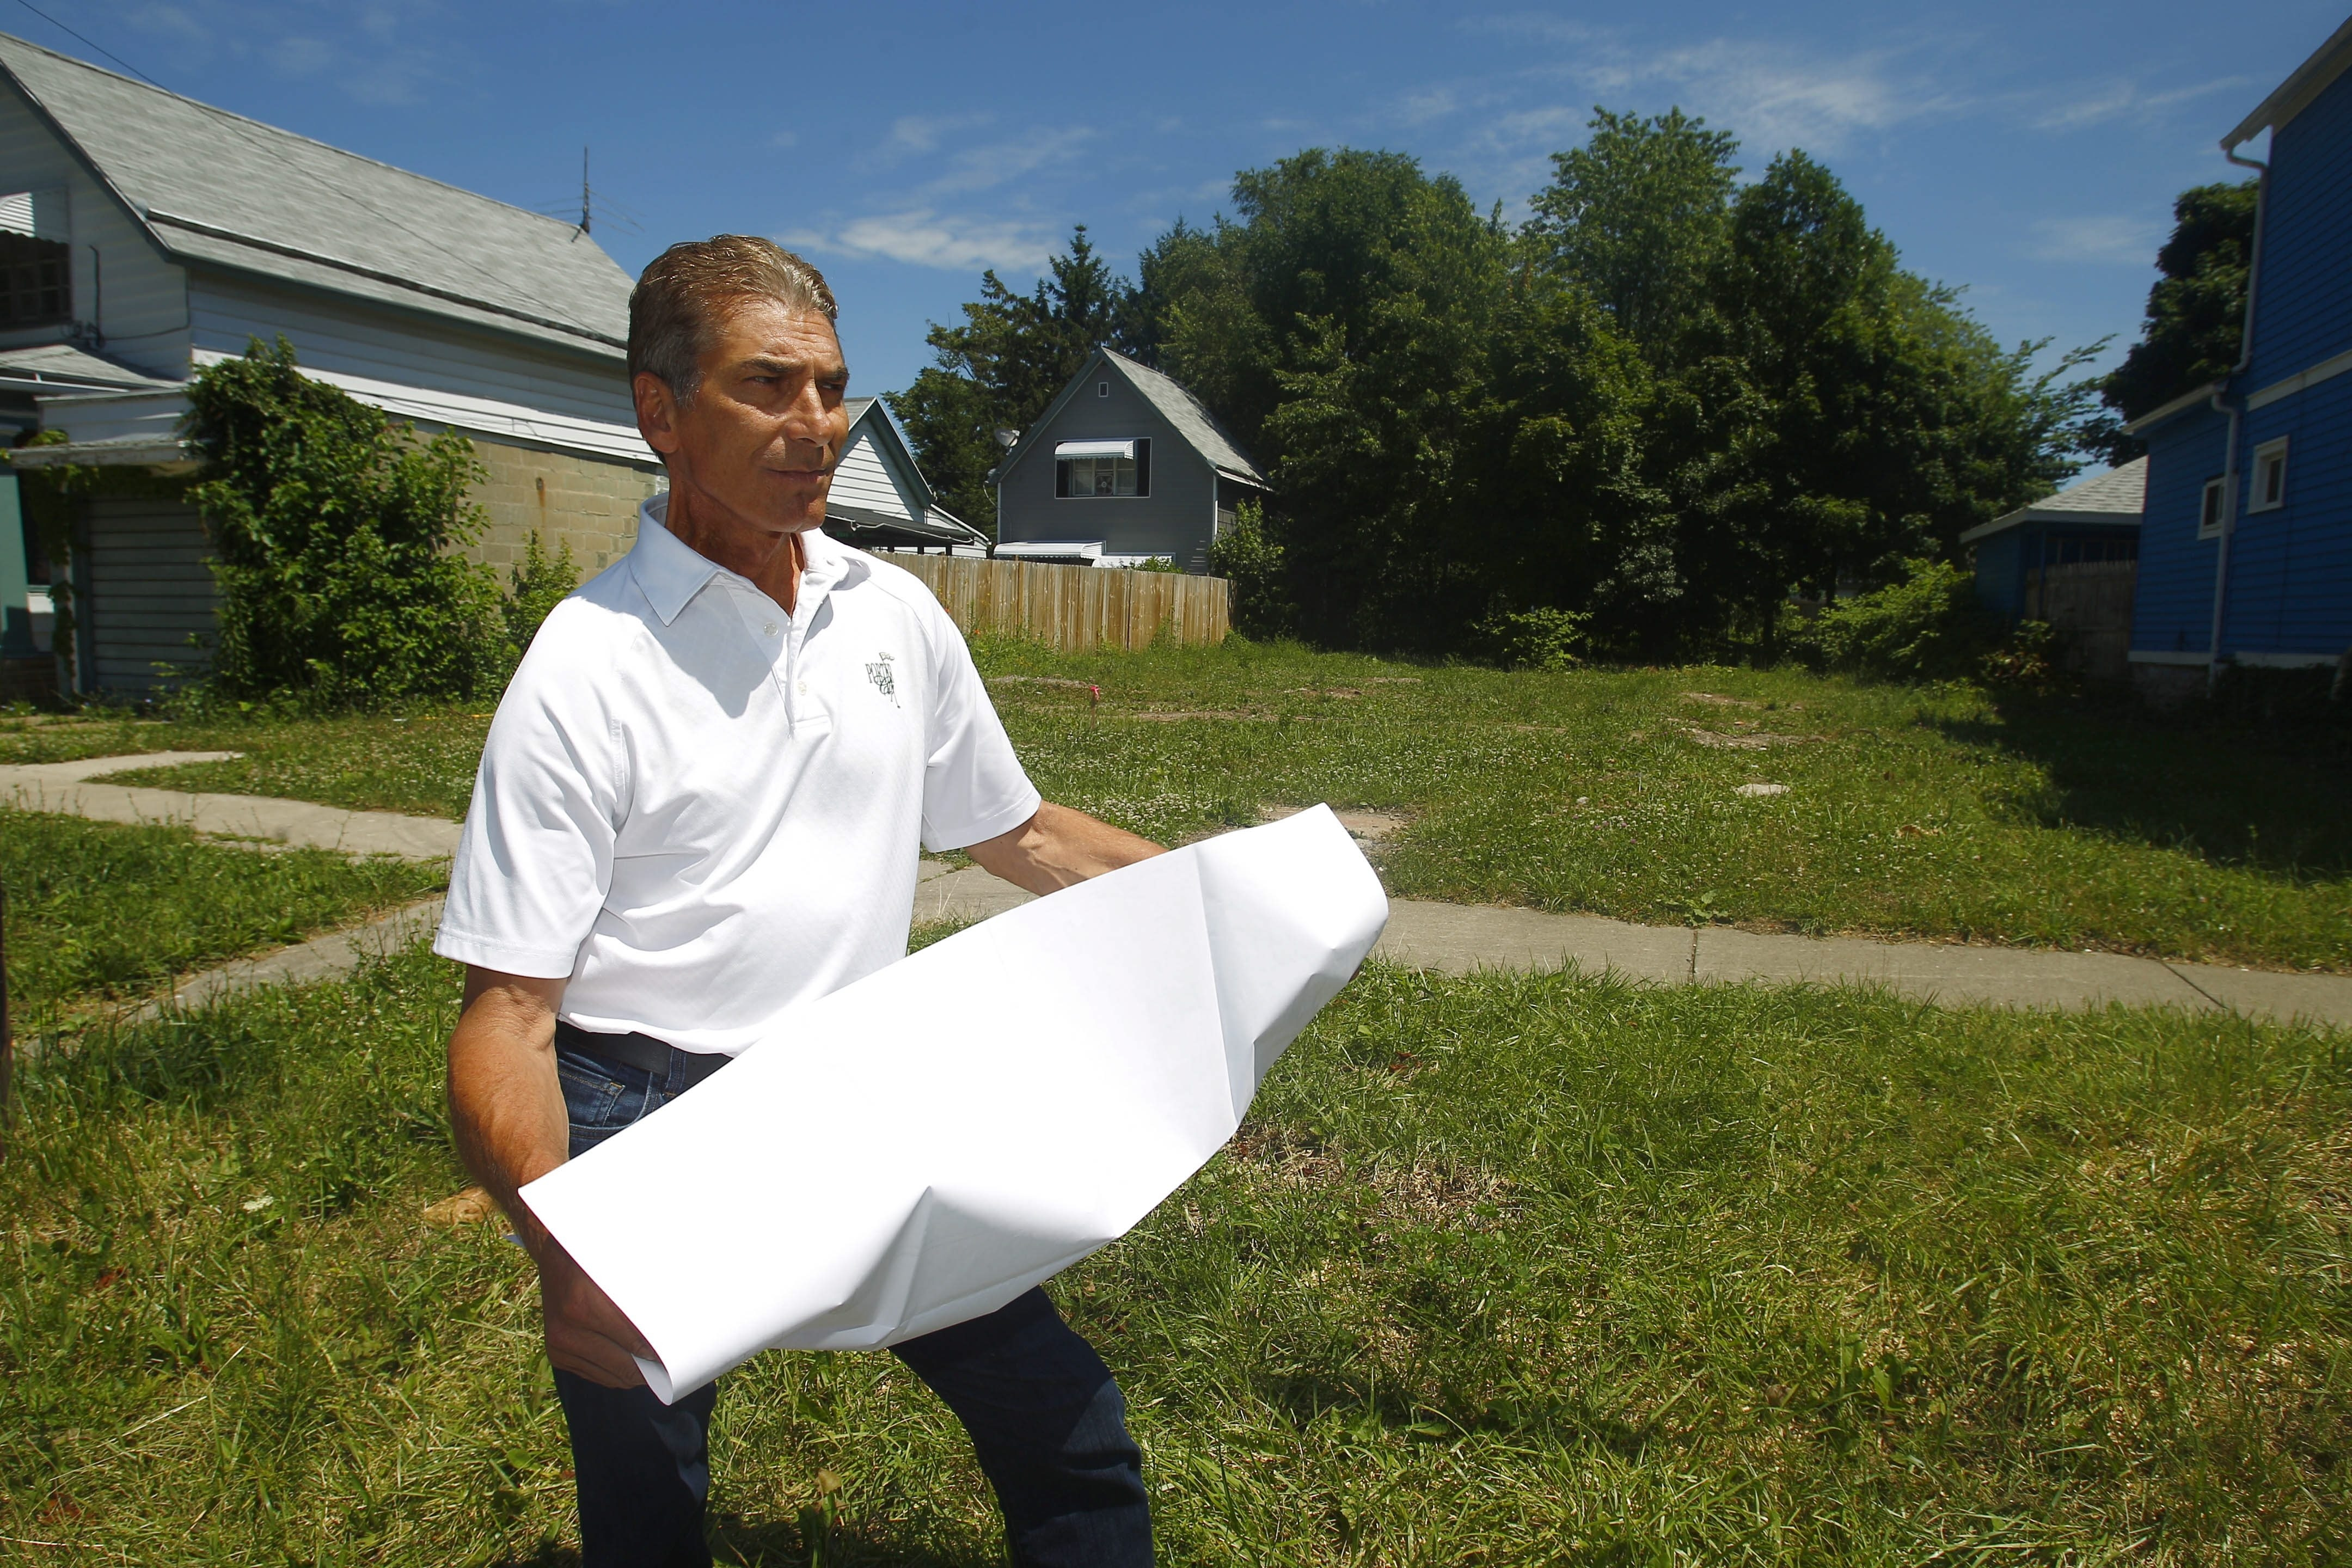 Joel Giambra, former Erie County executive, is getting into the redevelopment act, with plans to build new single- and multi-family homes on the Lower West Side.